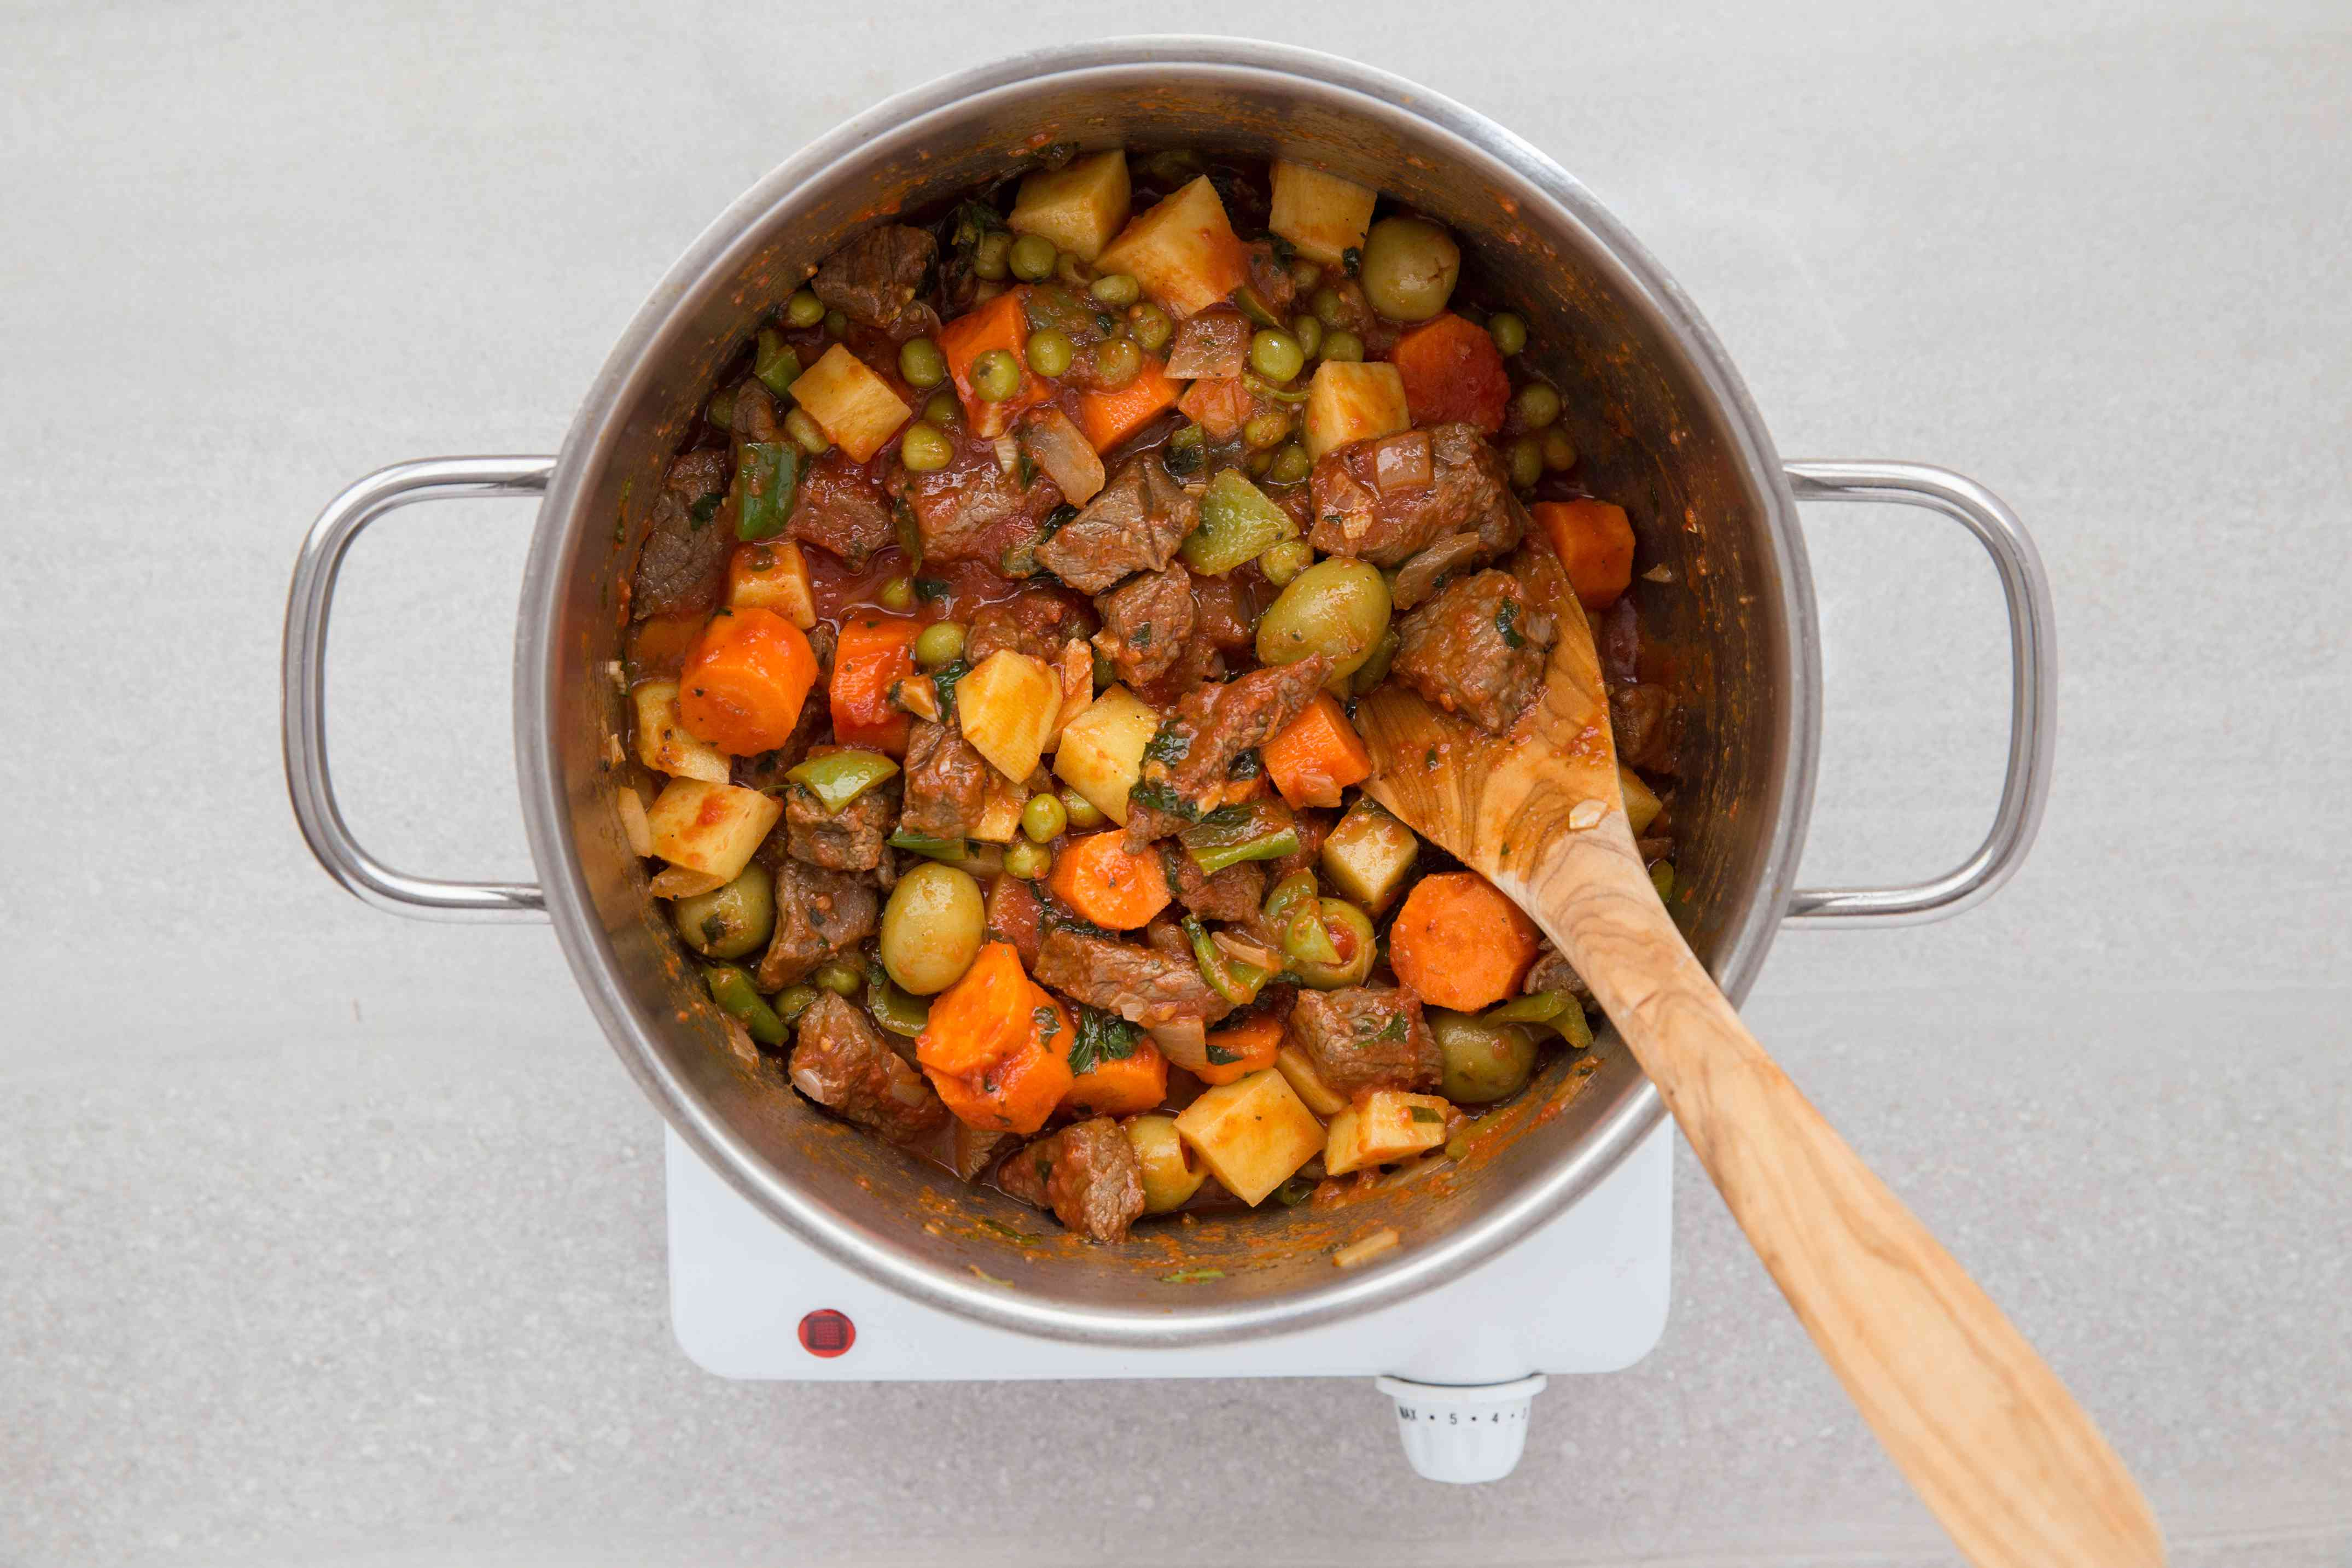 stew cooking in a pot